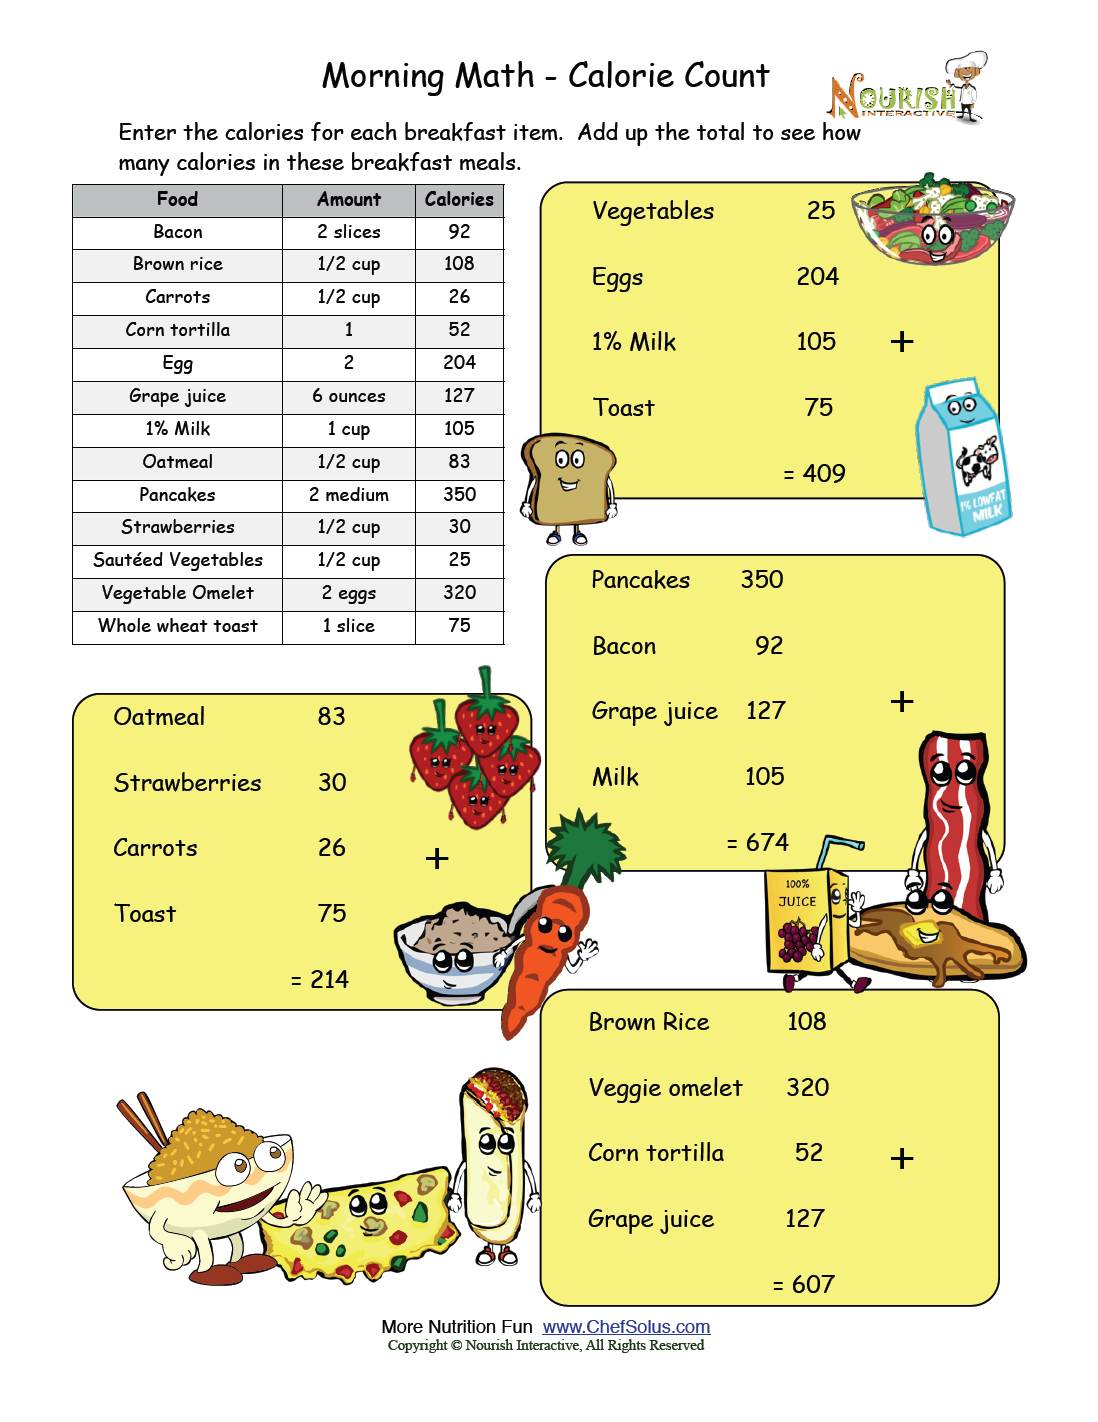 Worksheets Nutrition Worksheets For Elementary morning math answer key nutrition worksheets and games answersnutrition activitiesworksheetsfun stuff